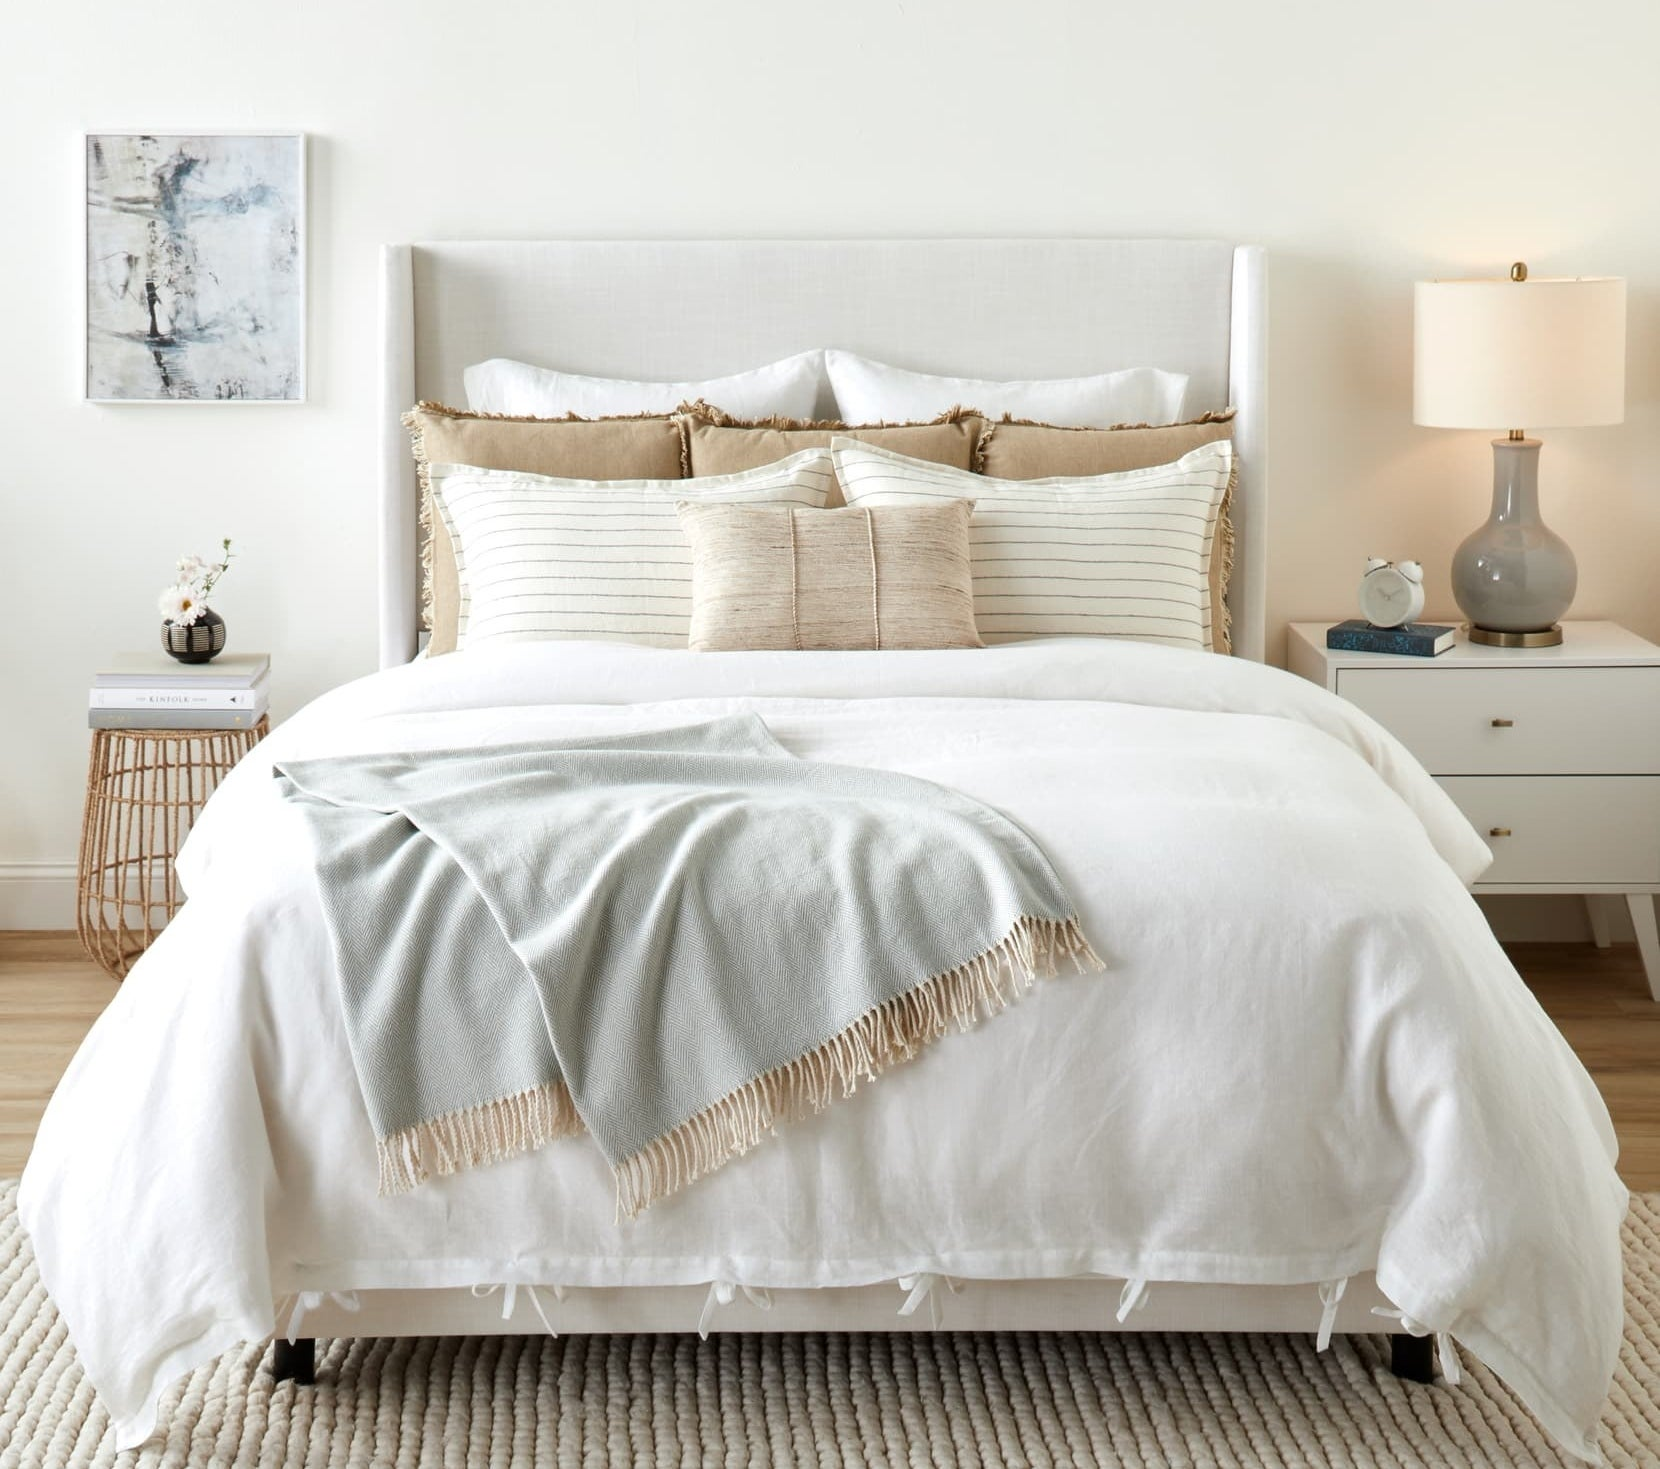 A bed dressed with the sheets and decorative pillows